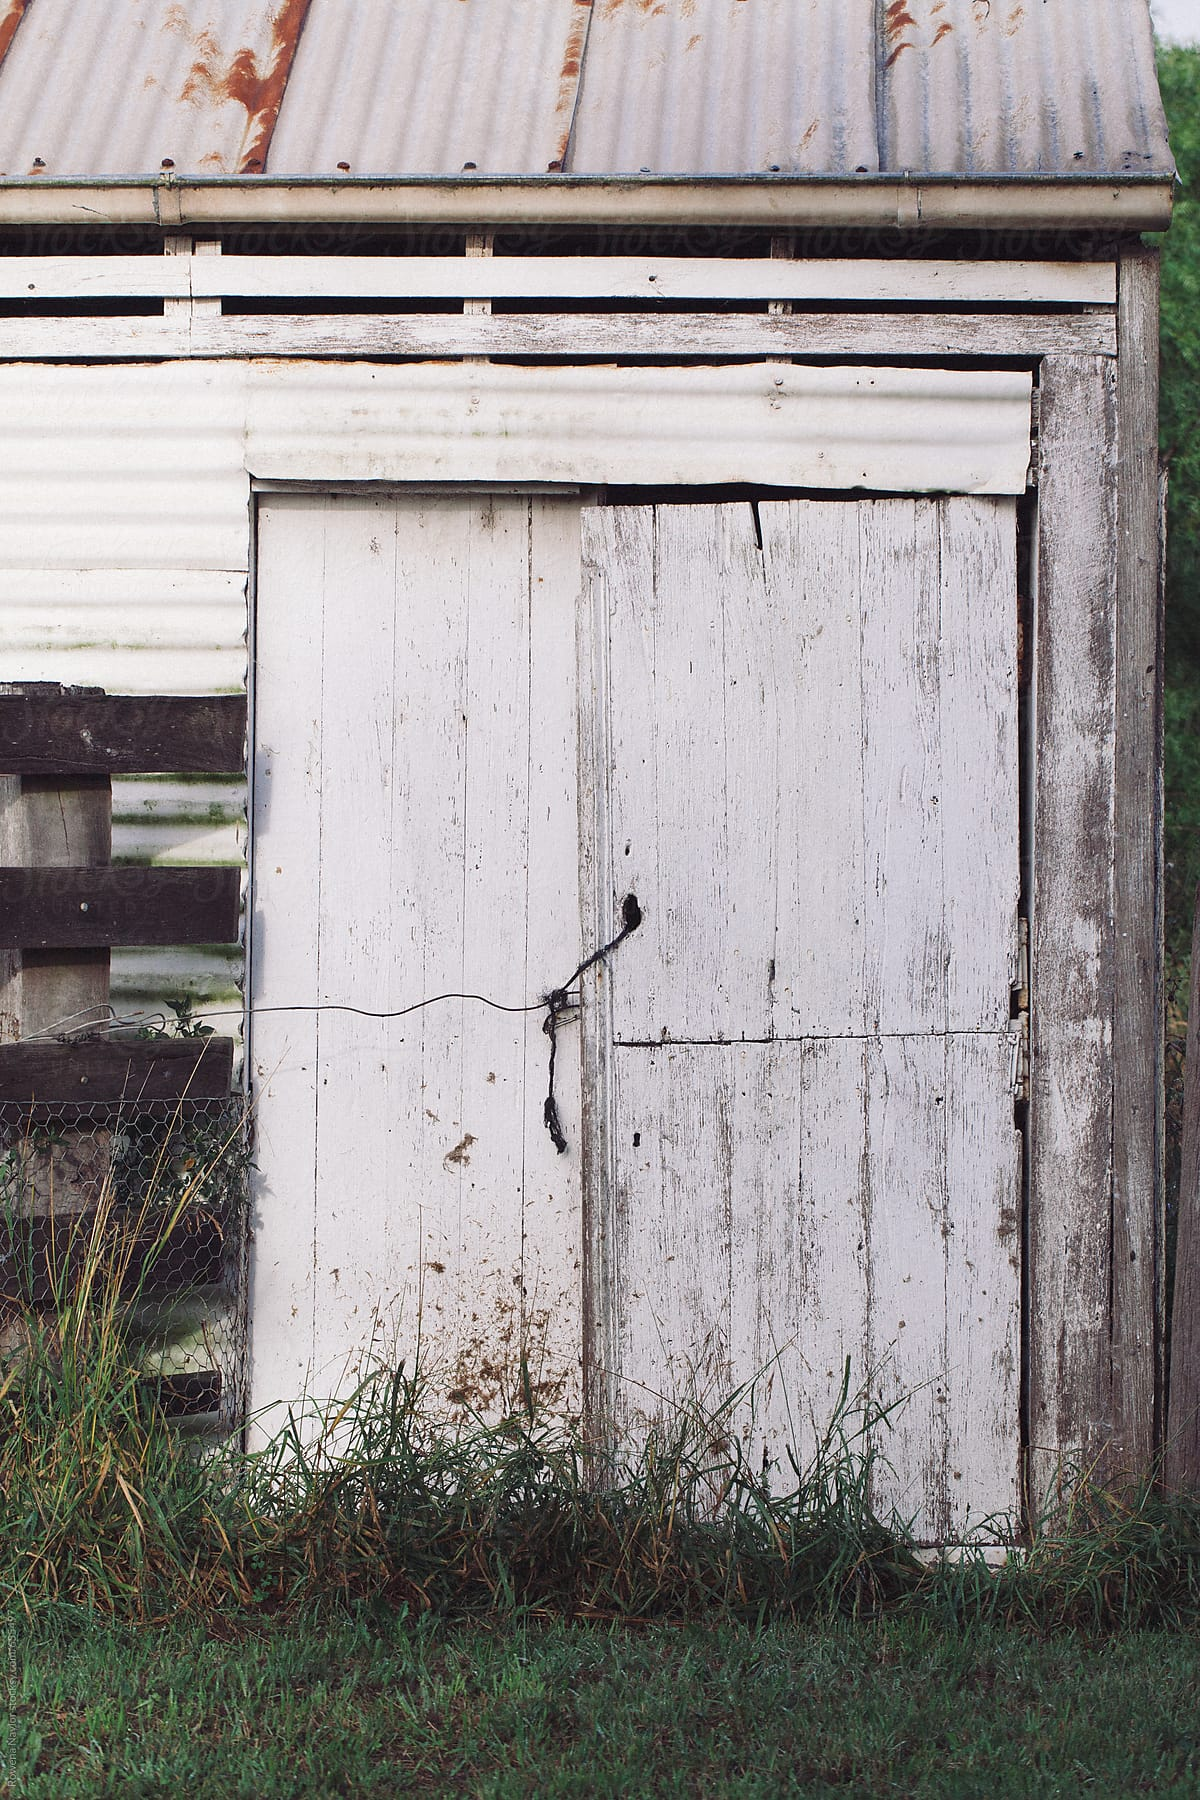 Rustic Old Barn Doors On Farm By Rowena Naylor For Stocksy United